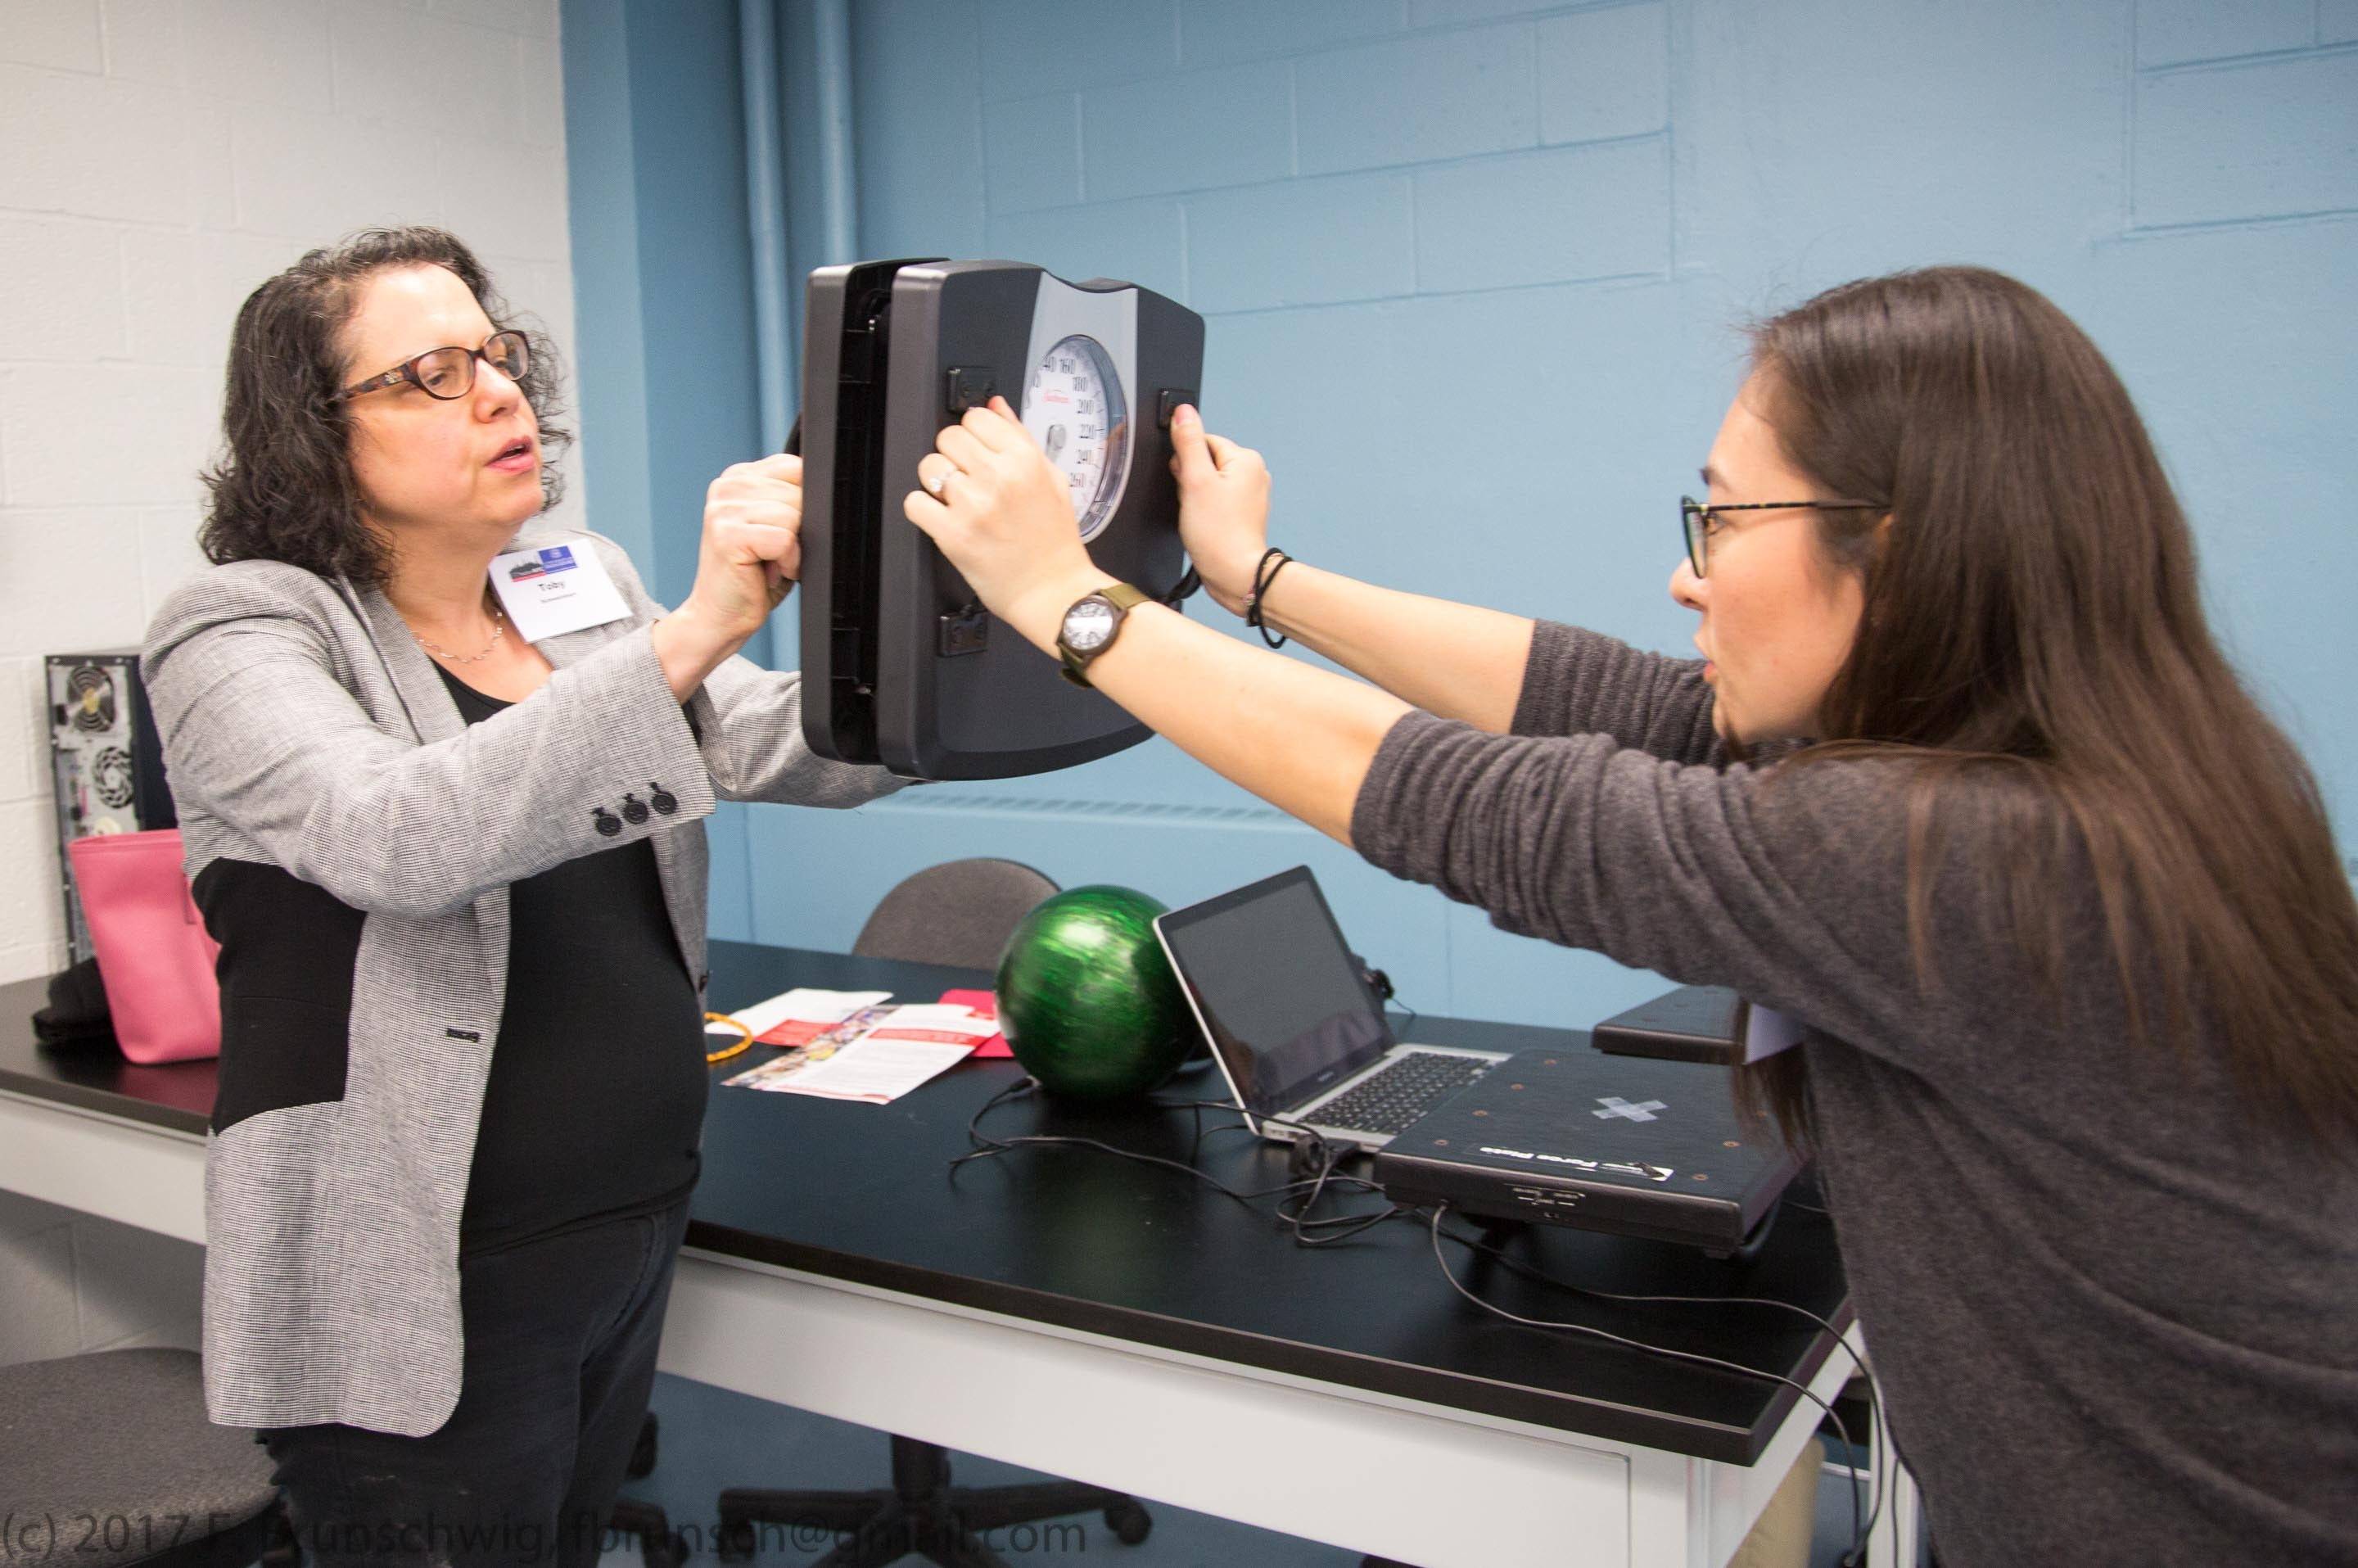 Investigative Science Learning Environments: Exploring NGSS-aligned Approaches to Teaching Physics